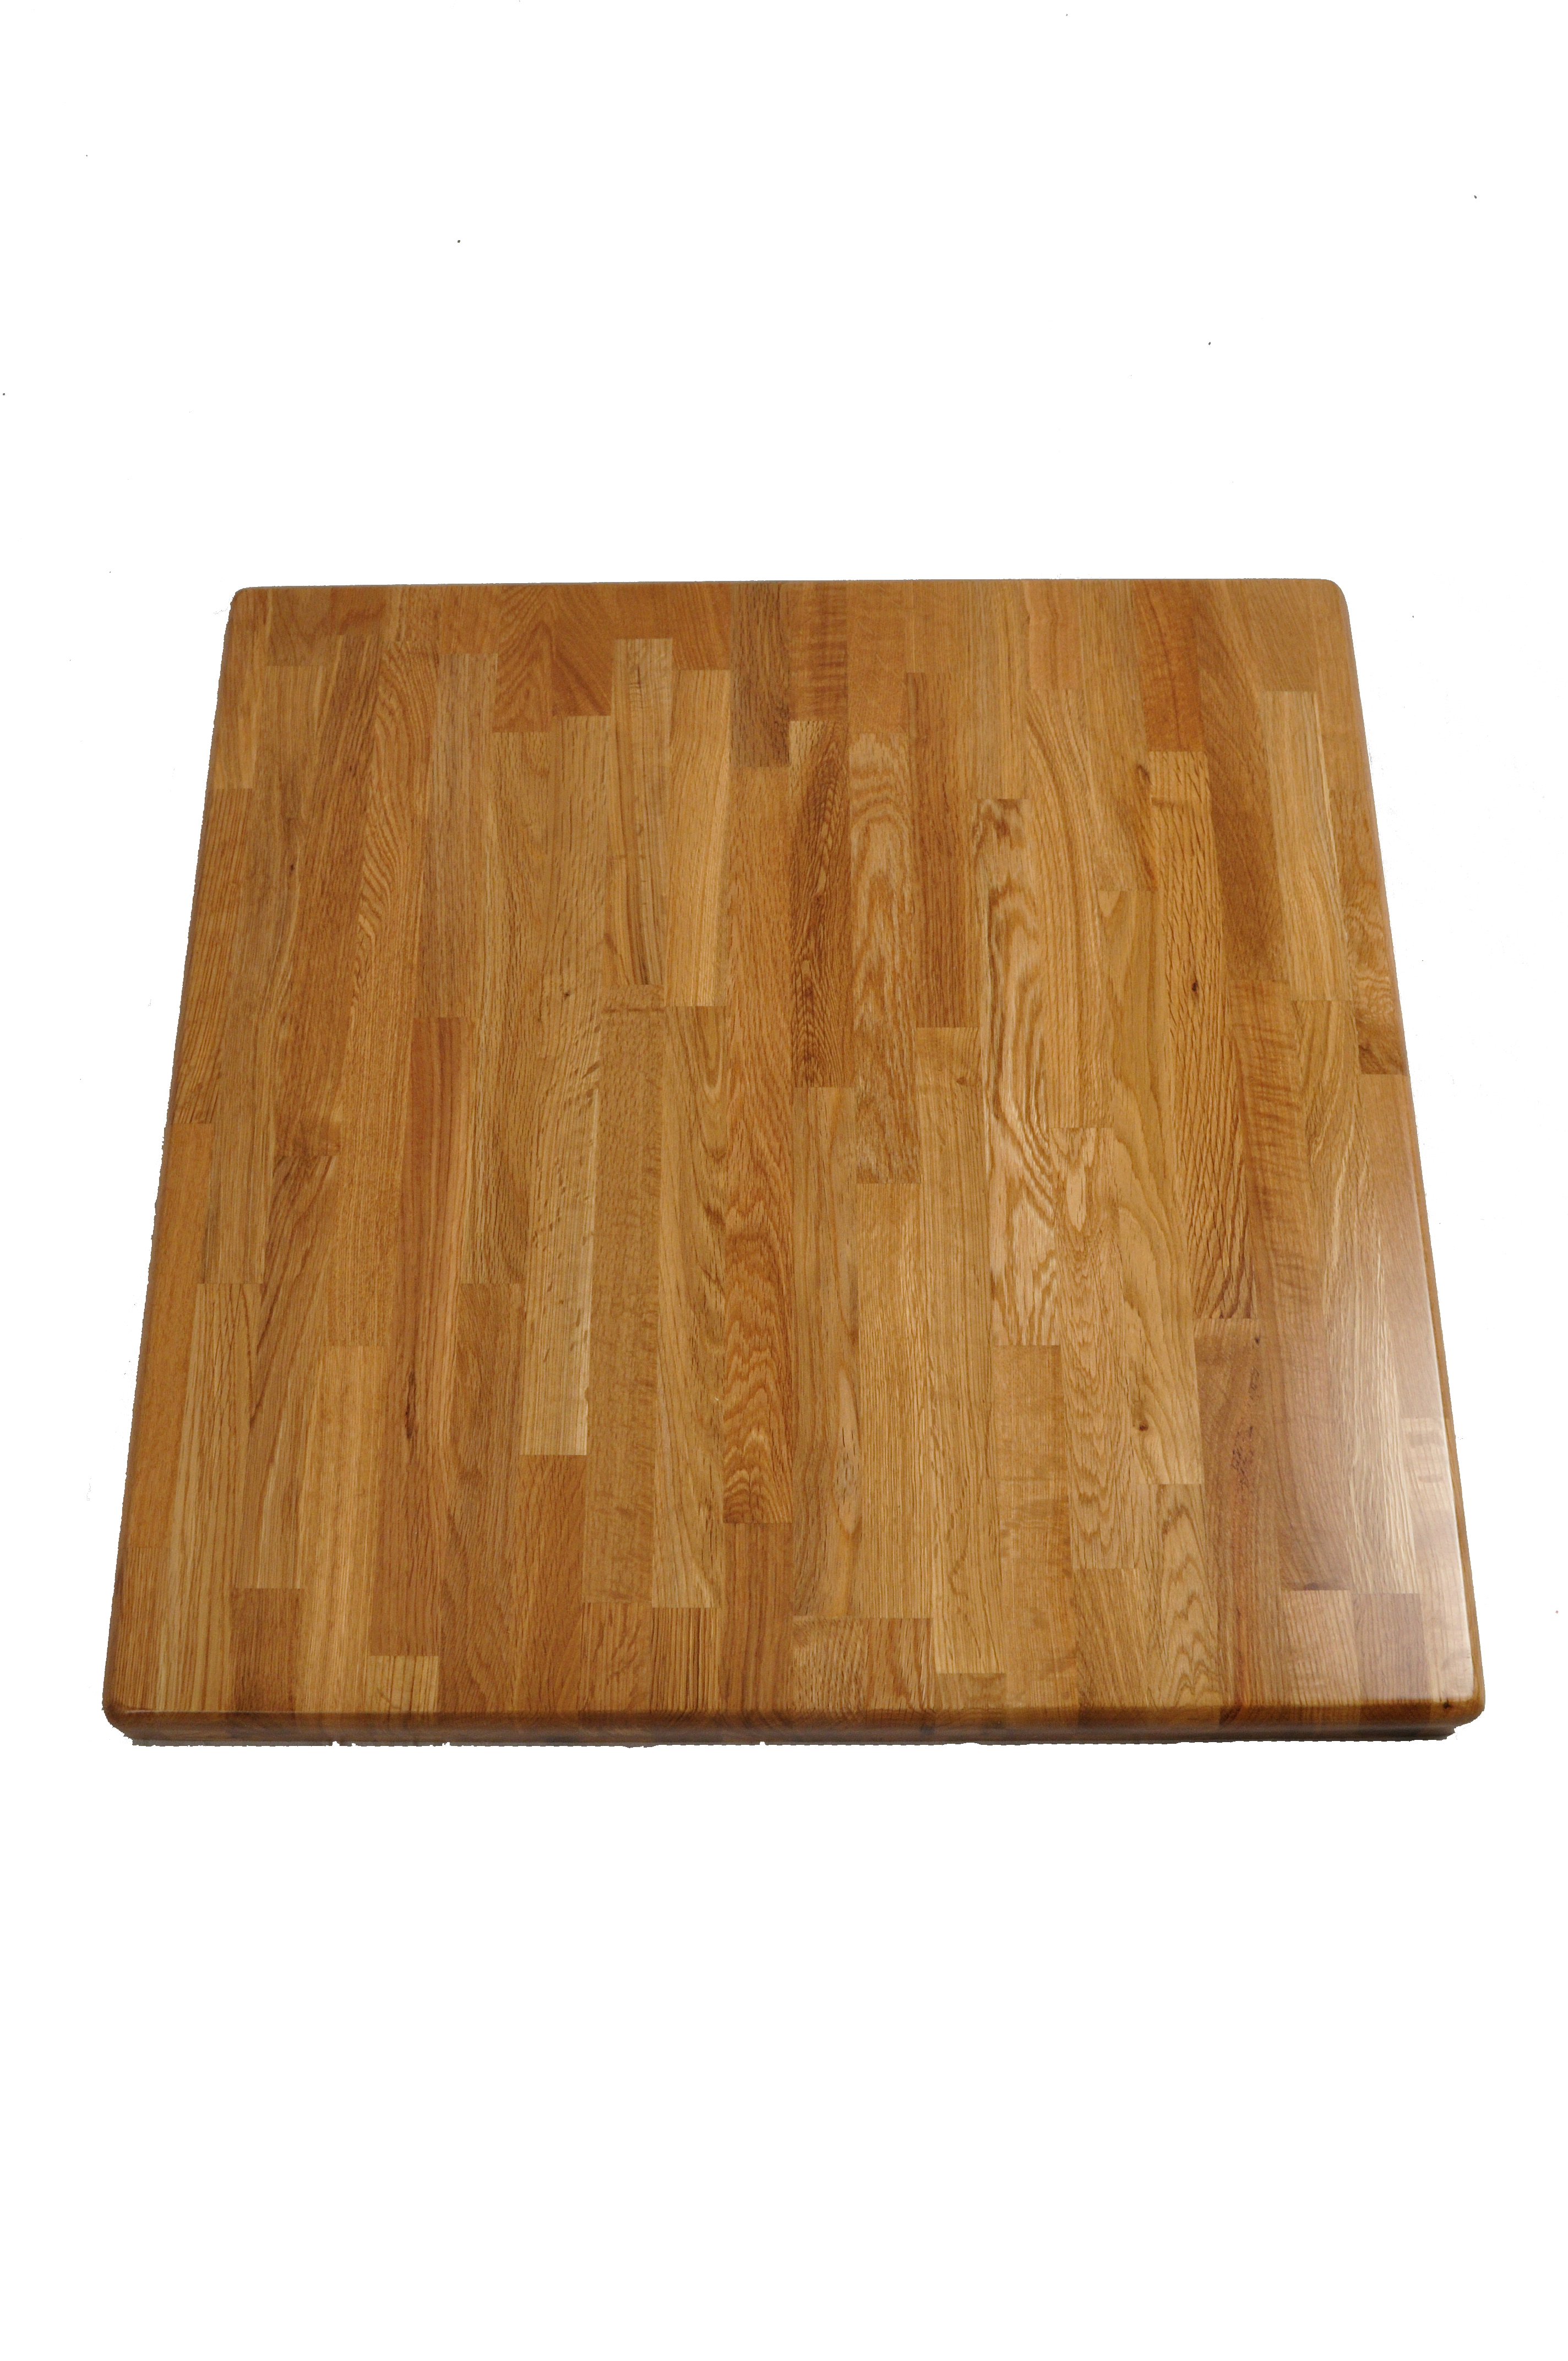 Solid Wood Square Table Top